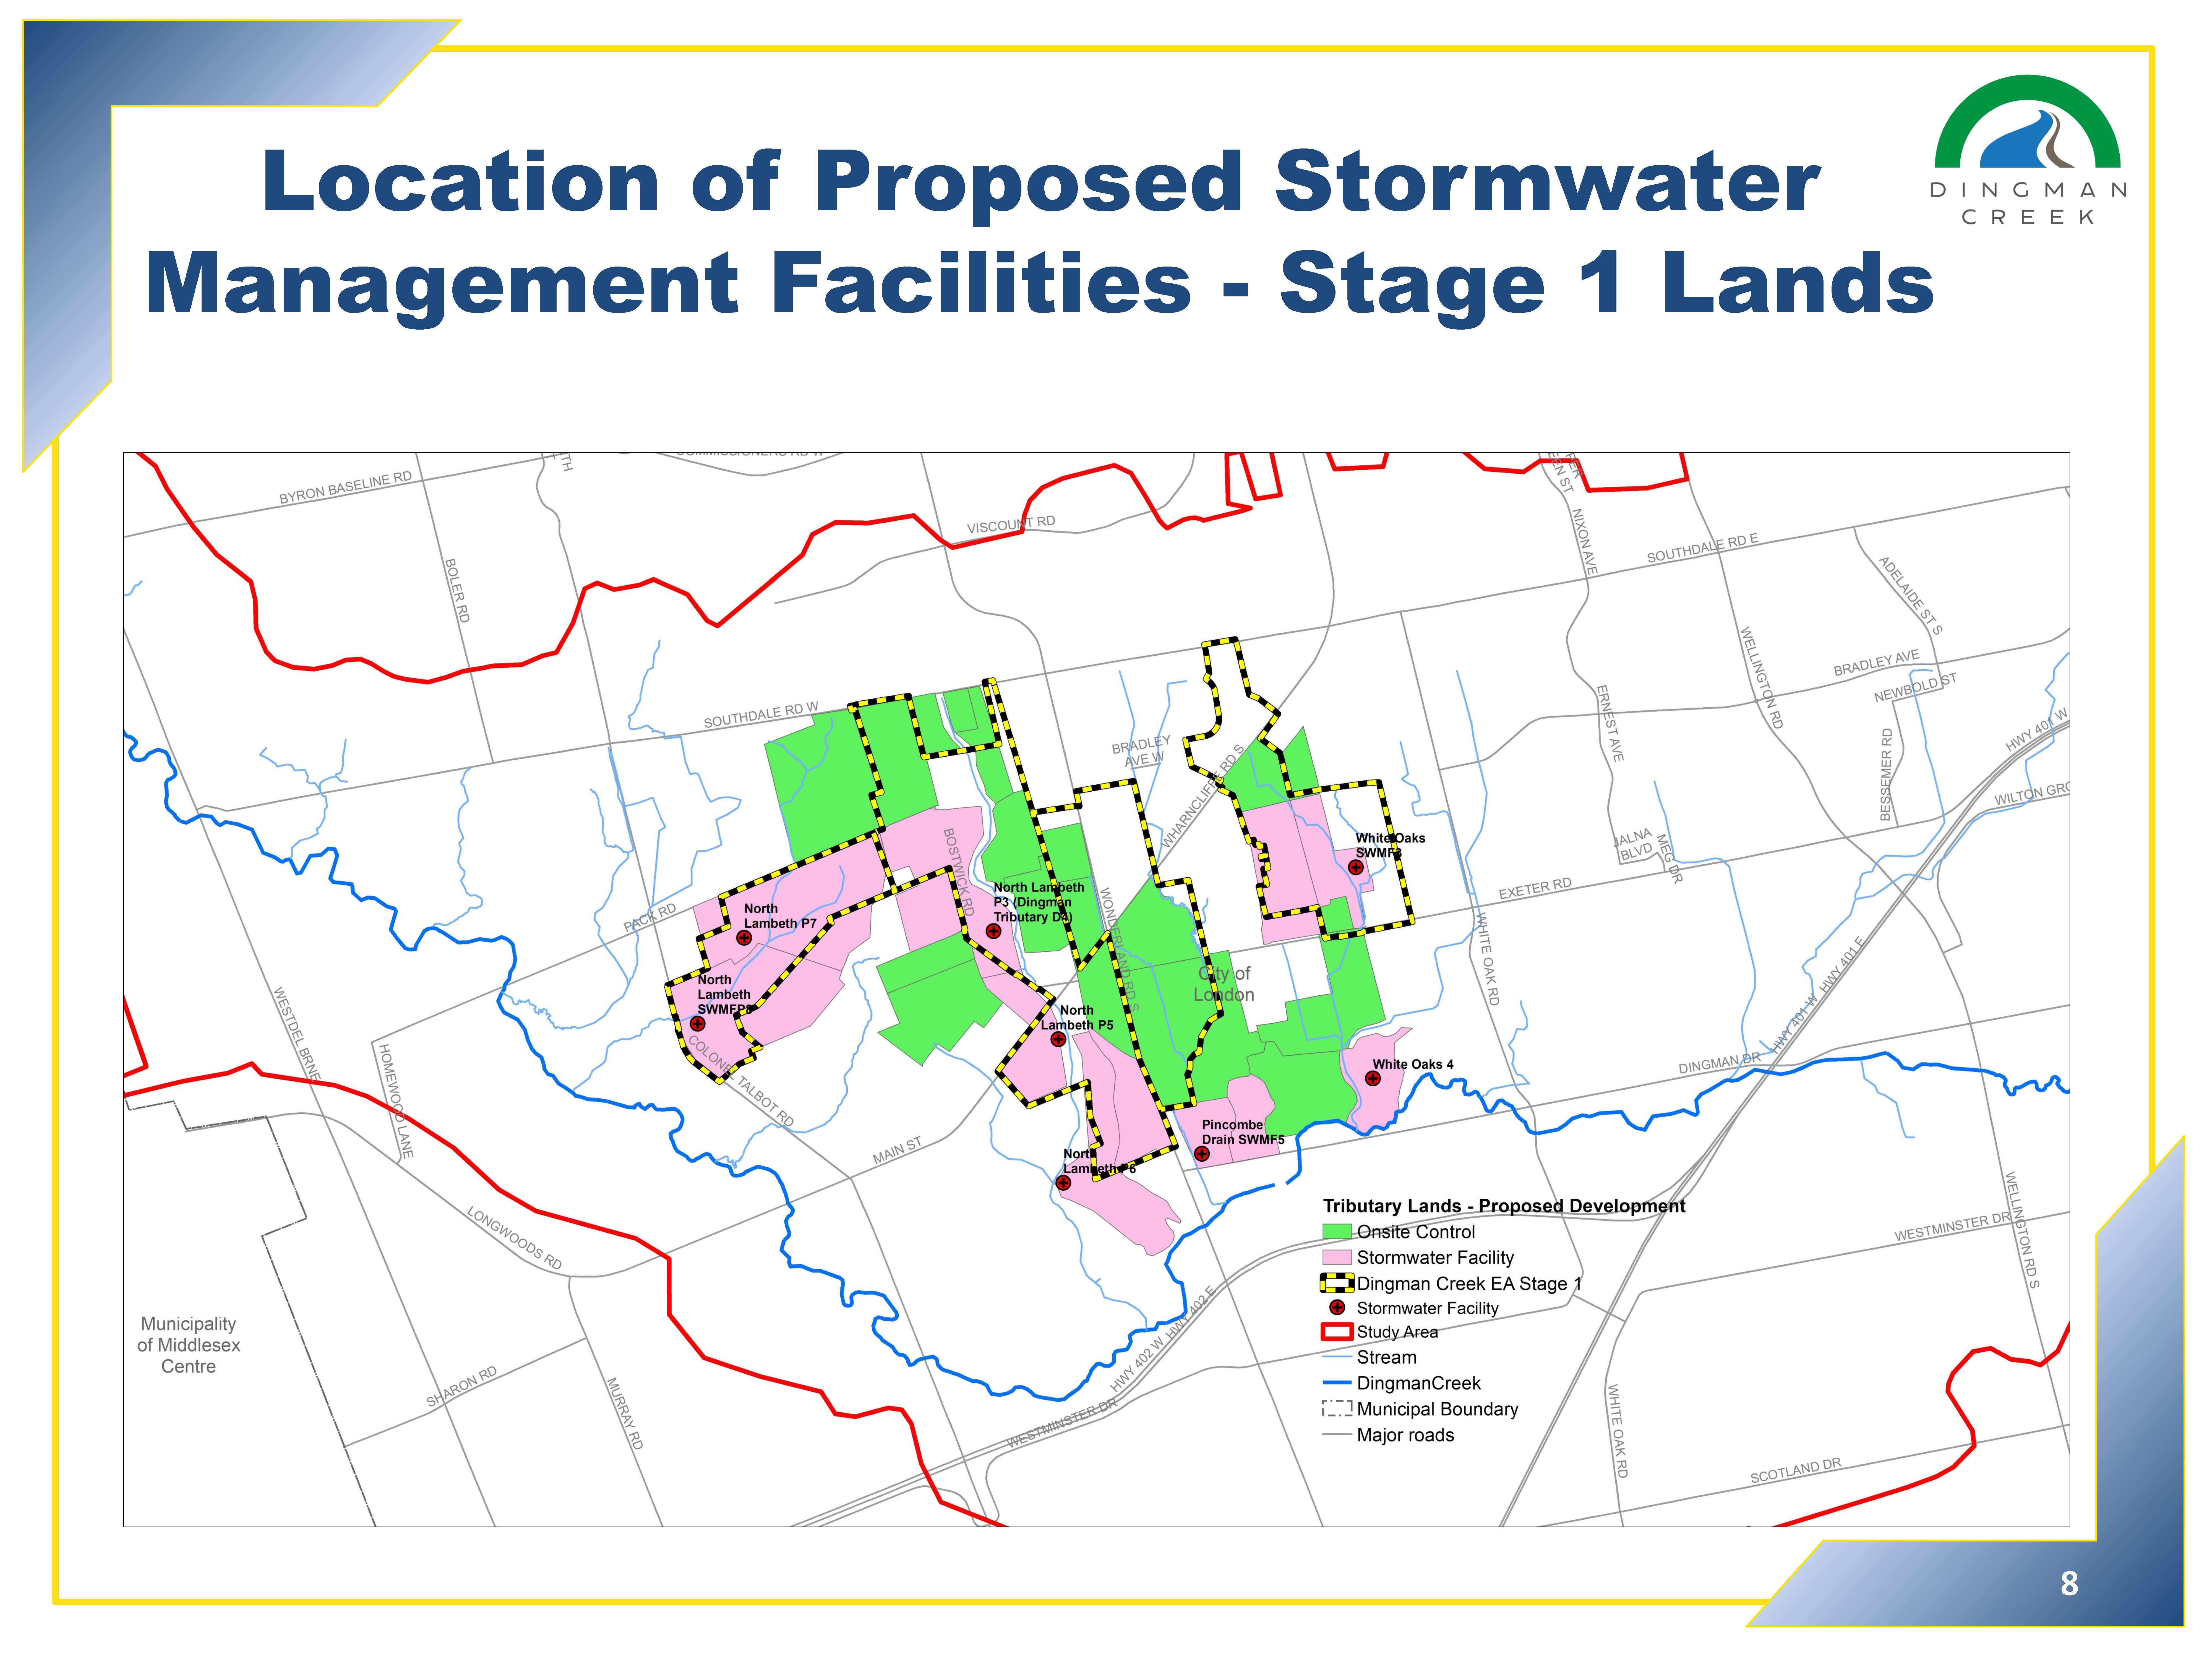 Location of Proposed Stormwater Management Facilities - Stage One Lands